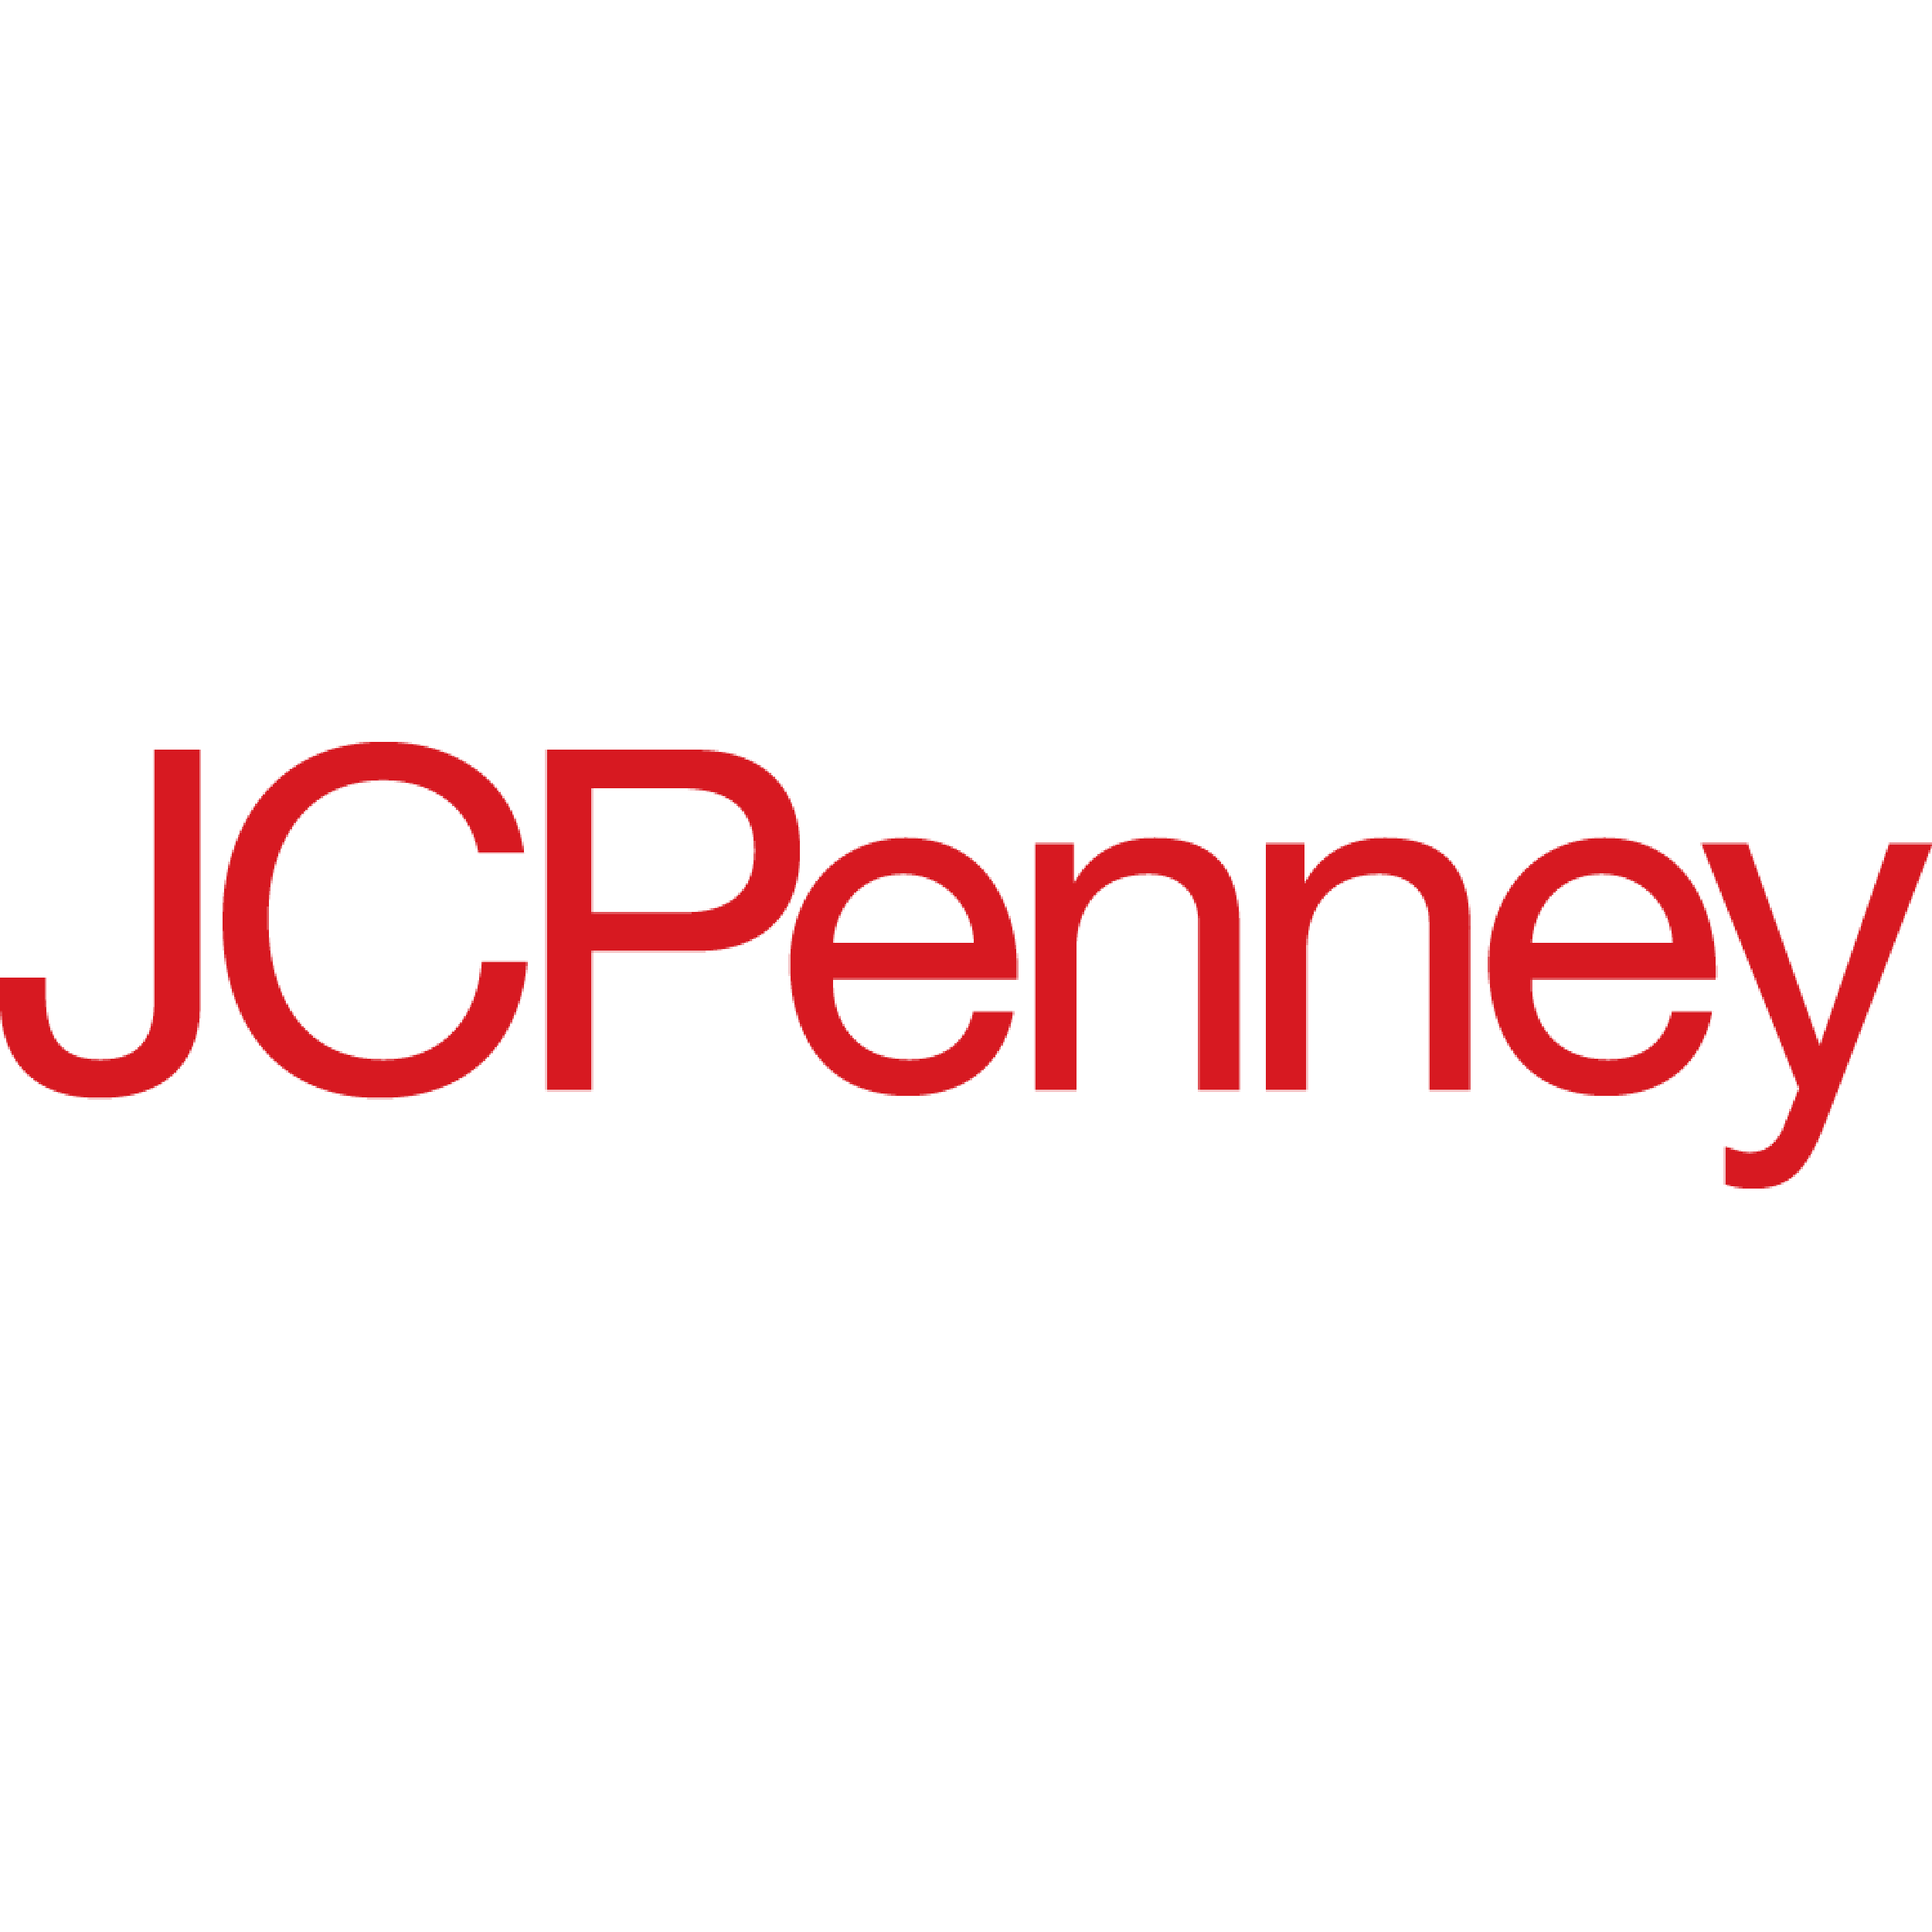 JCPenney - Visalia, CA - Department Stores